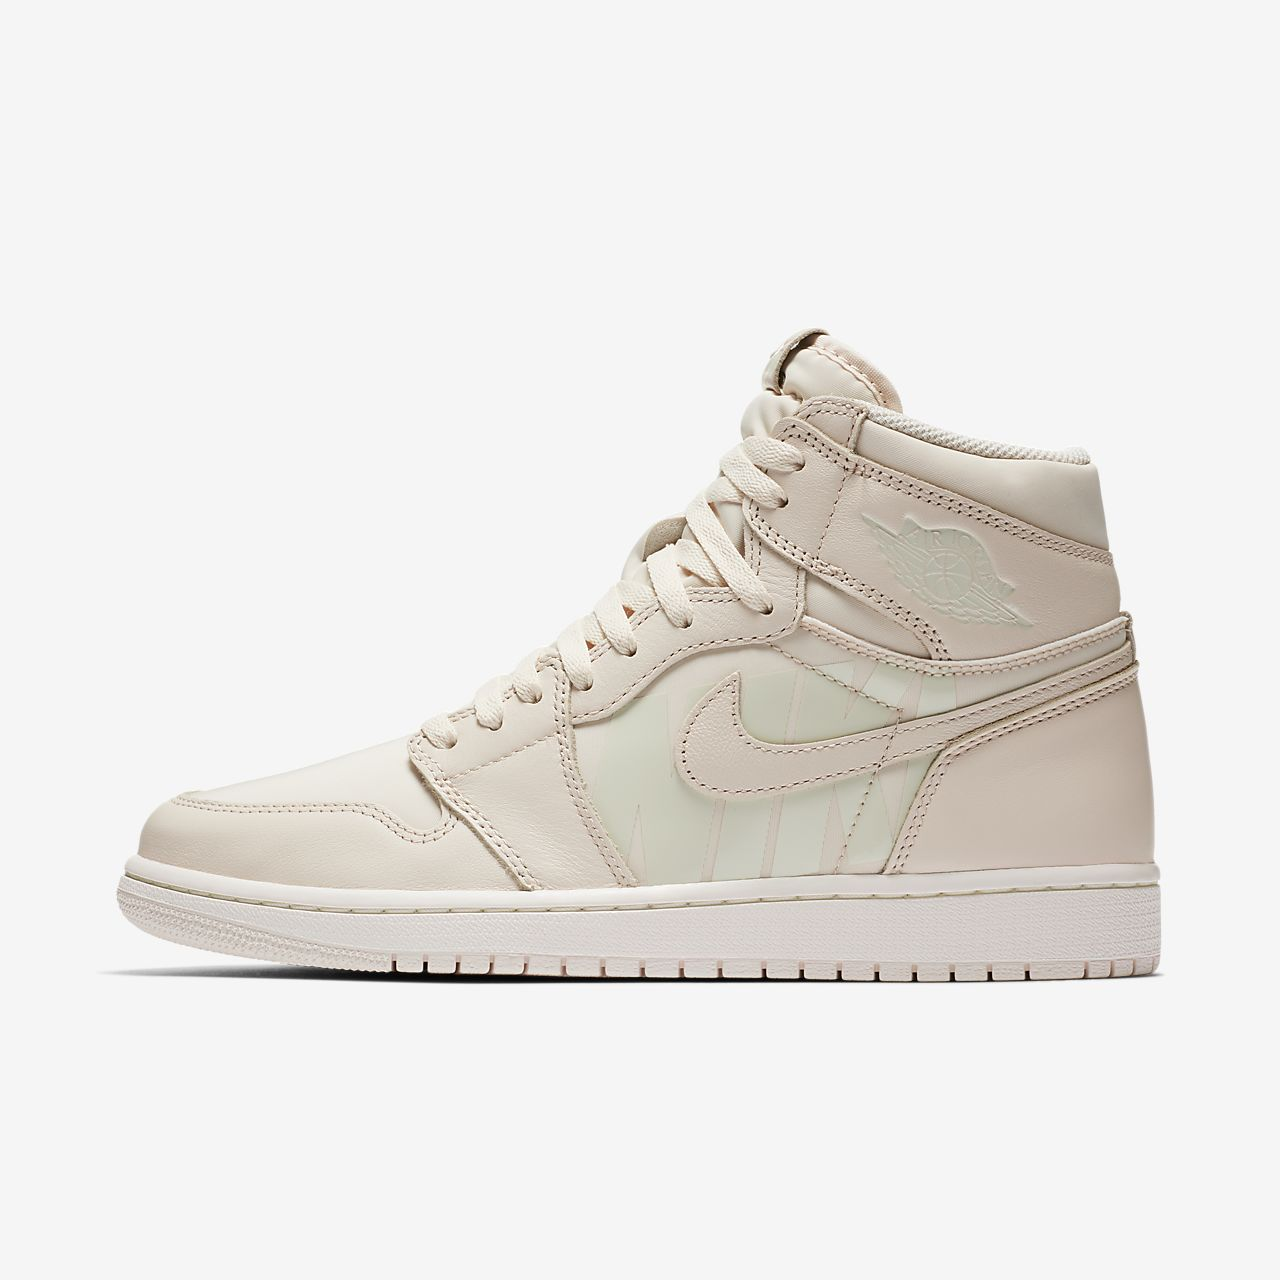 Air Jordan 1 Retro High OG Shoe. Nike.com 9da8d7062dce